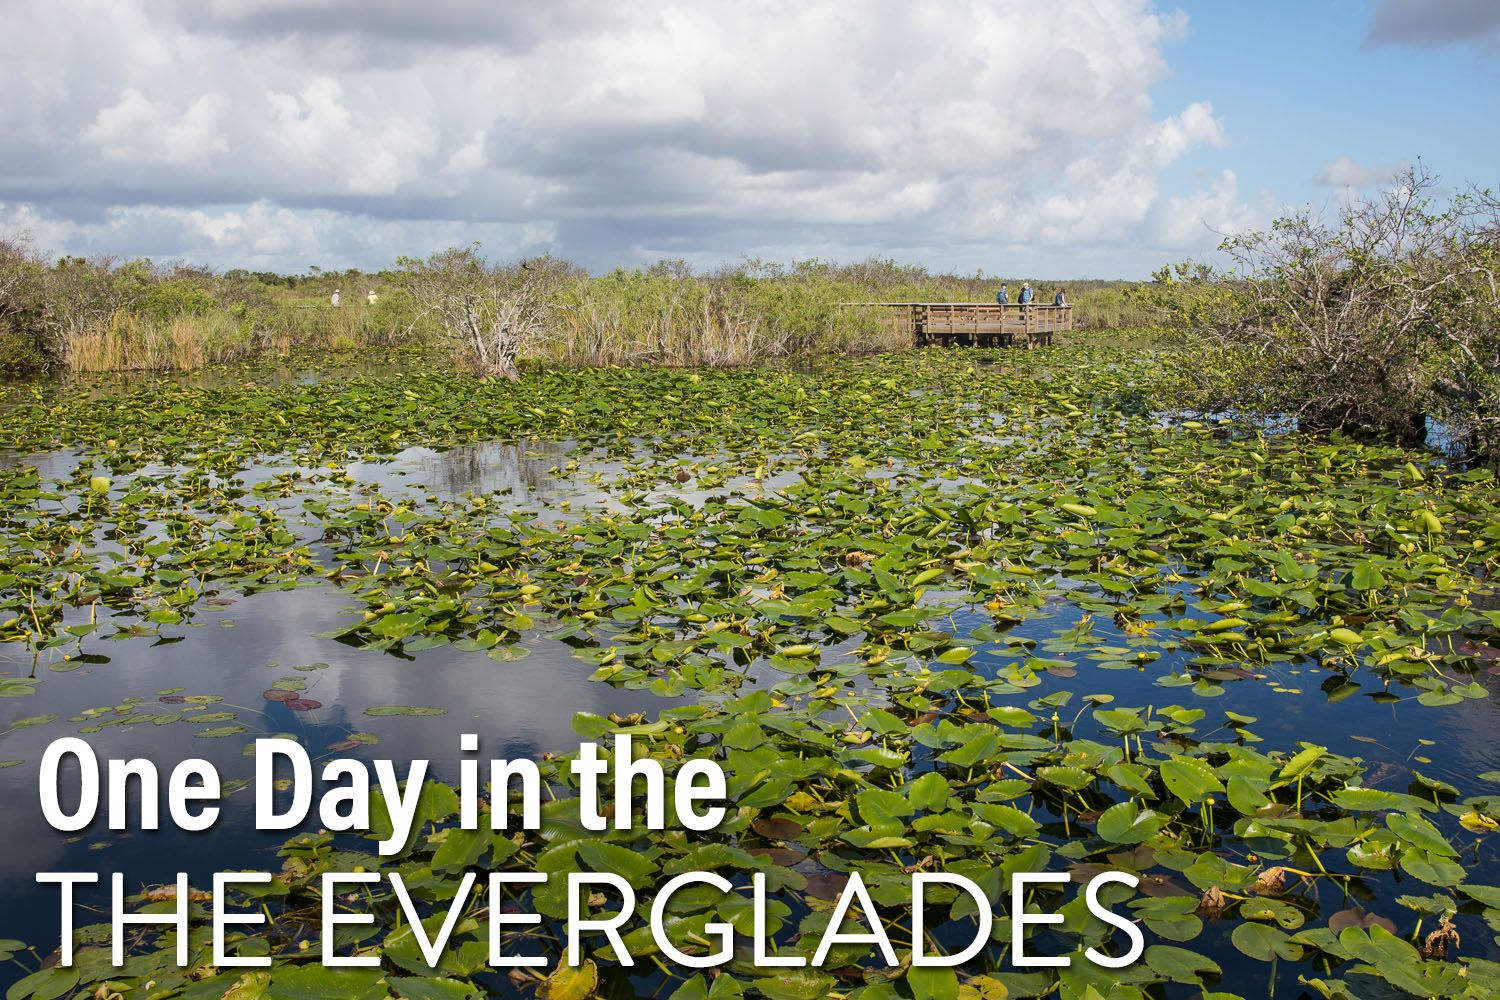 One Day in Everglades